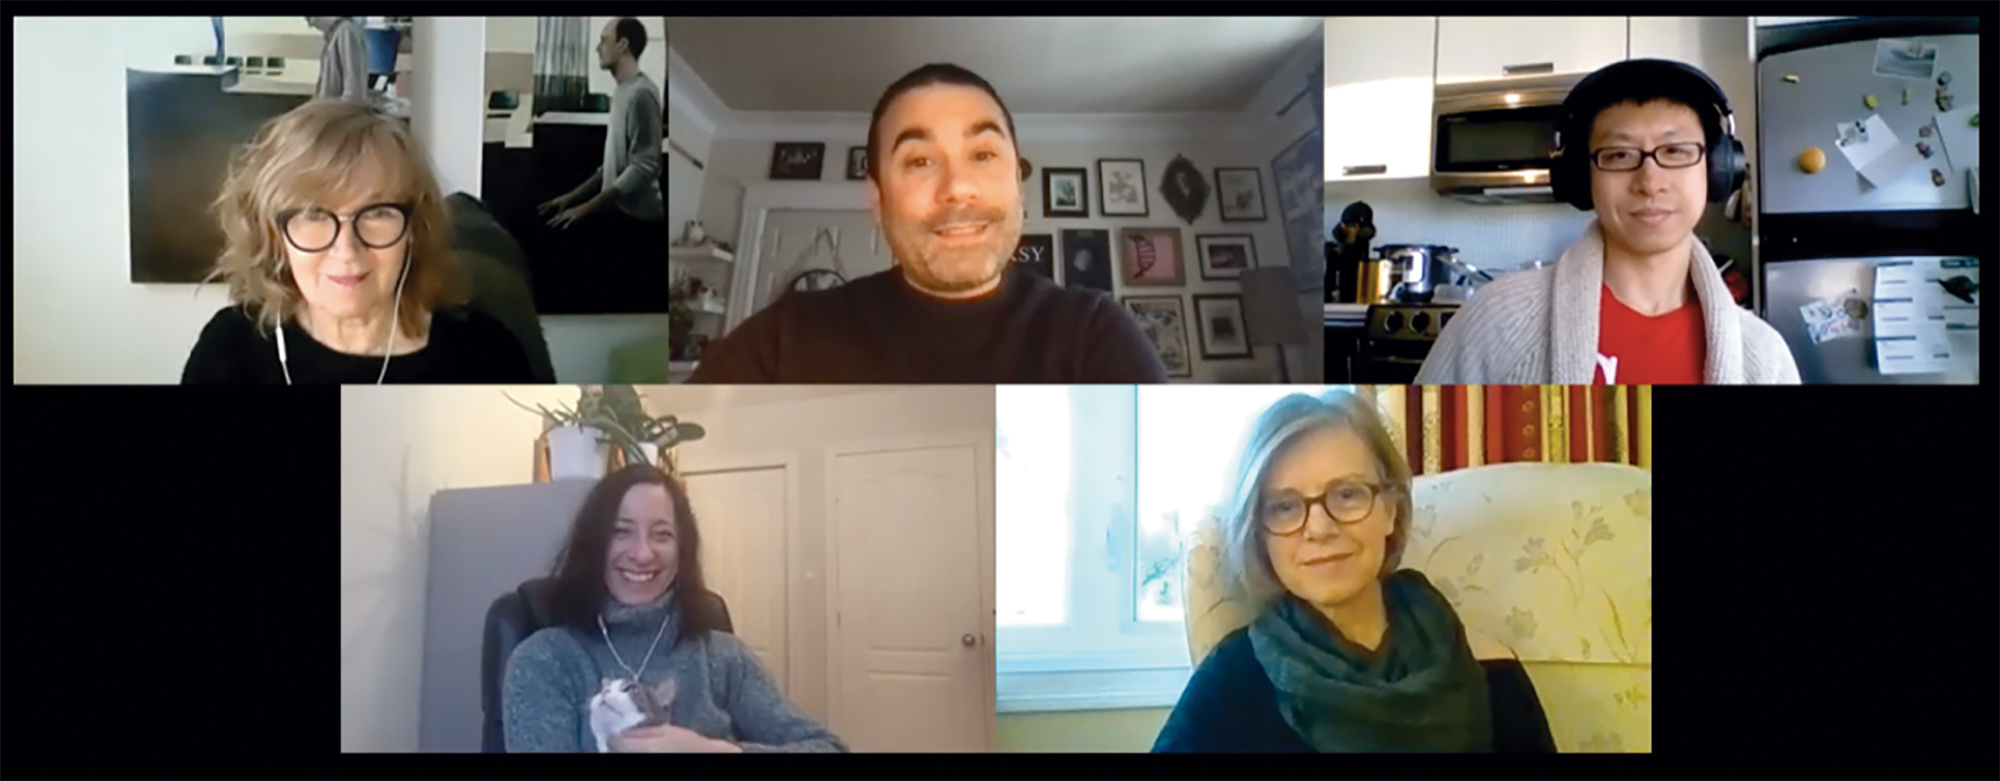 A composite image of five authors on a Zoom call